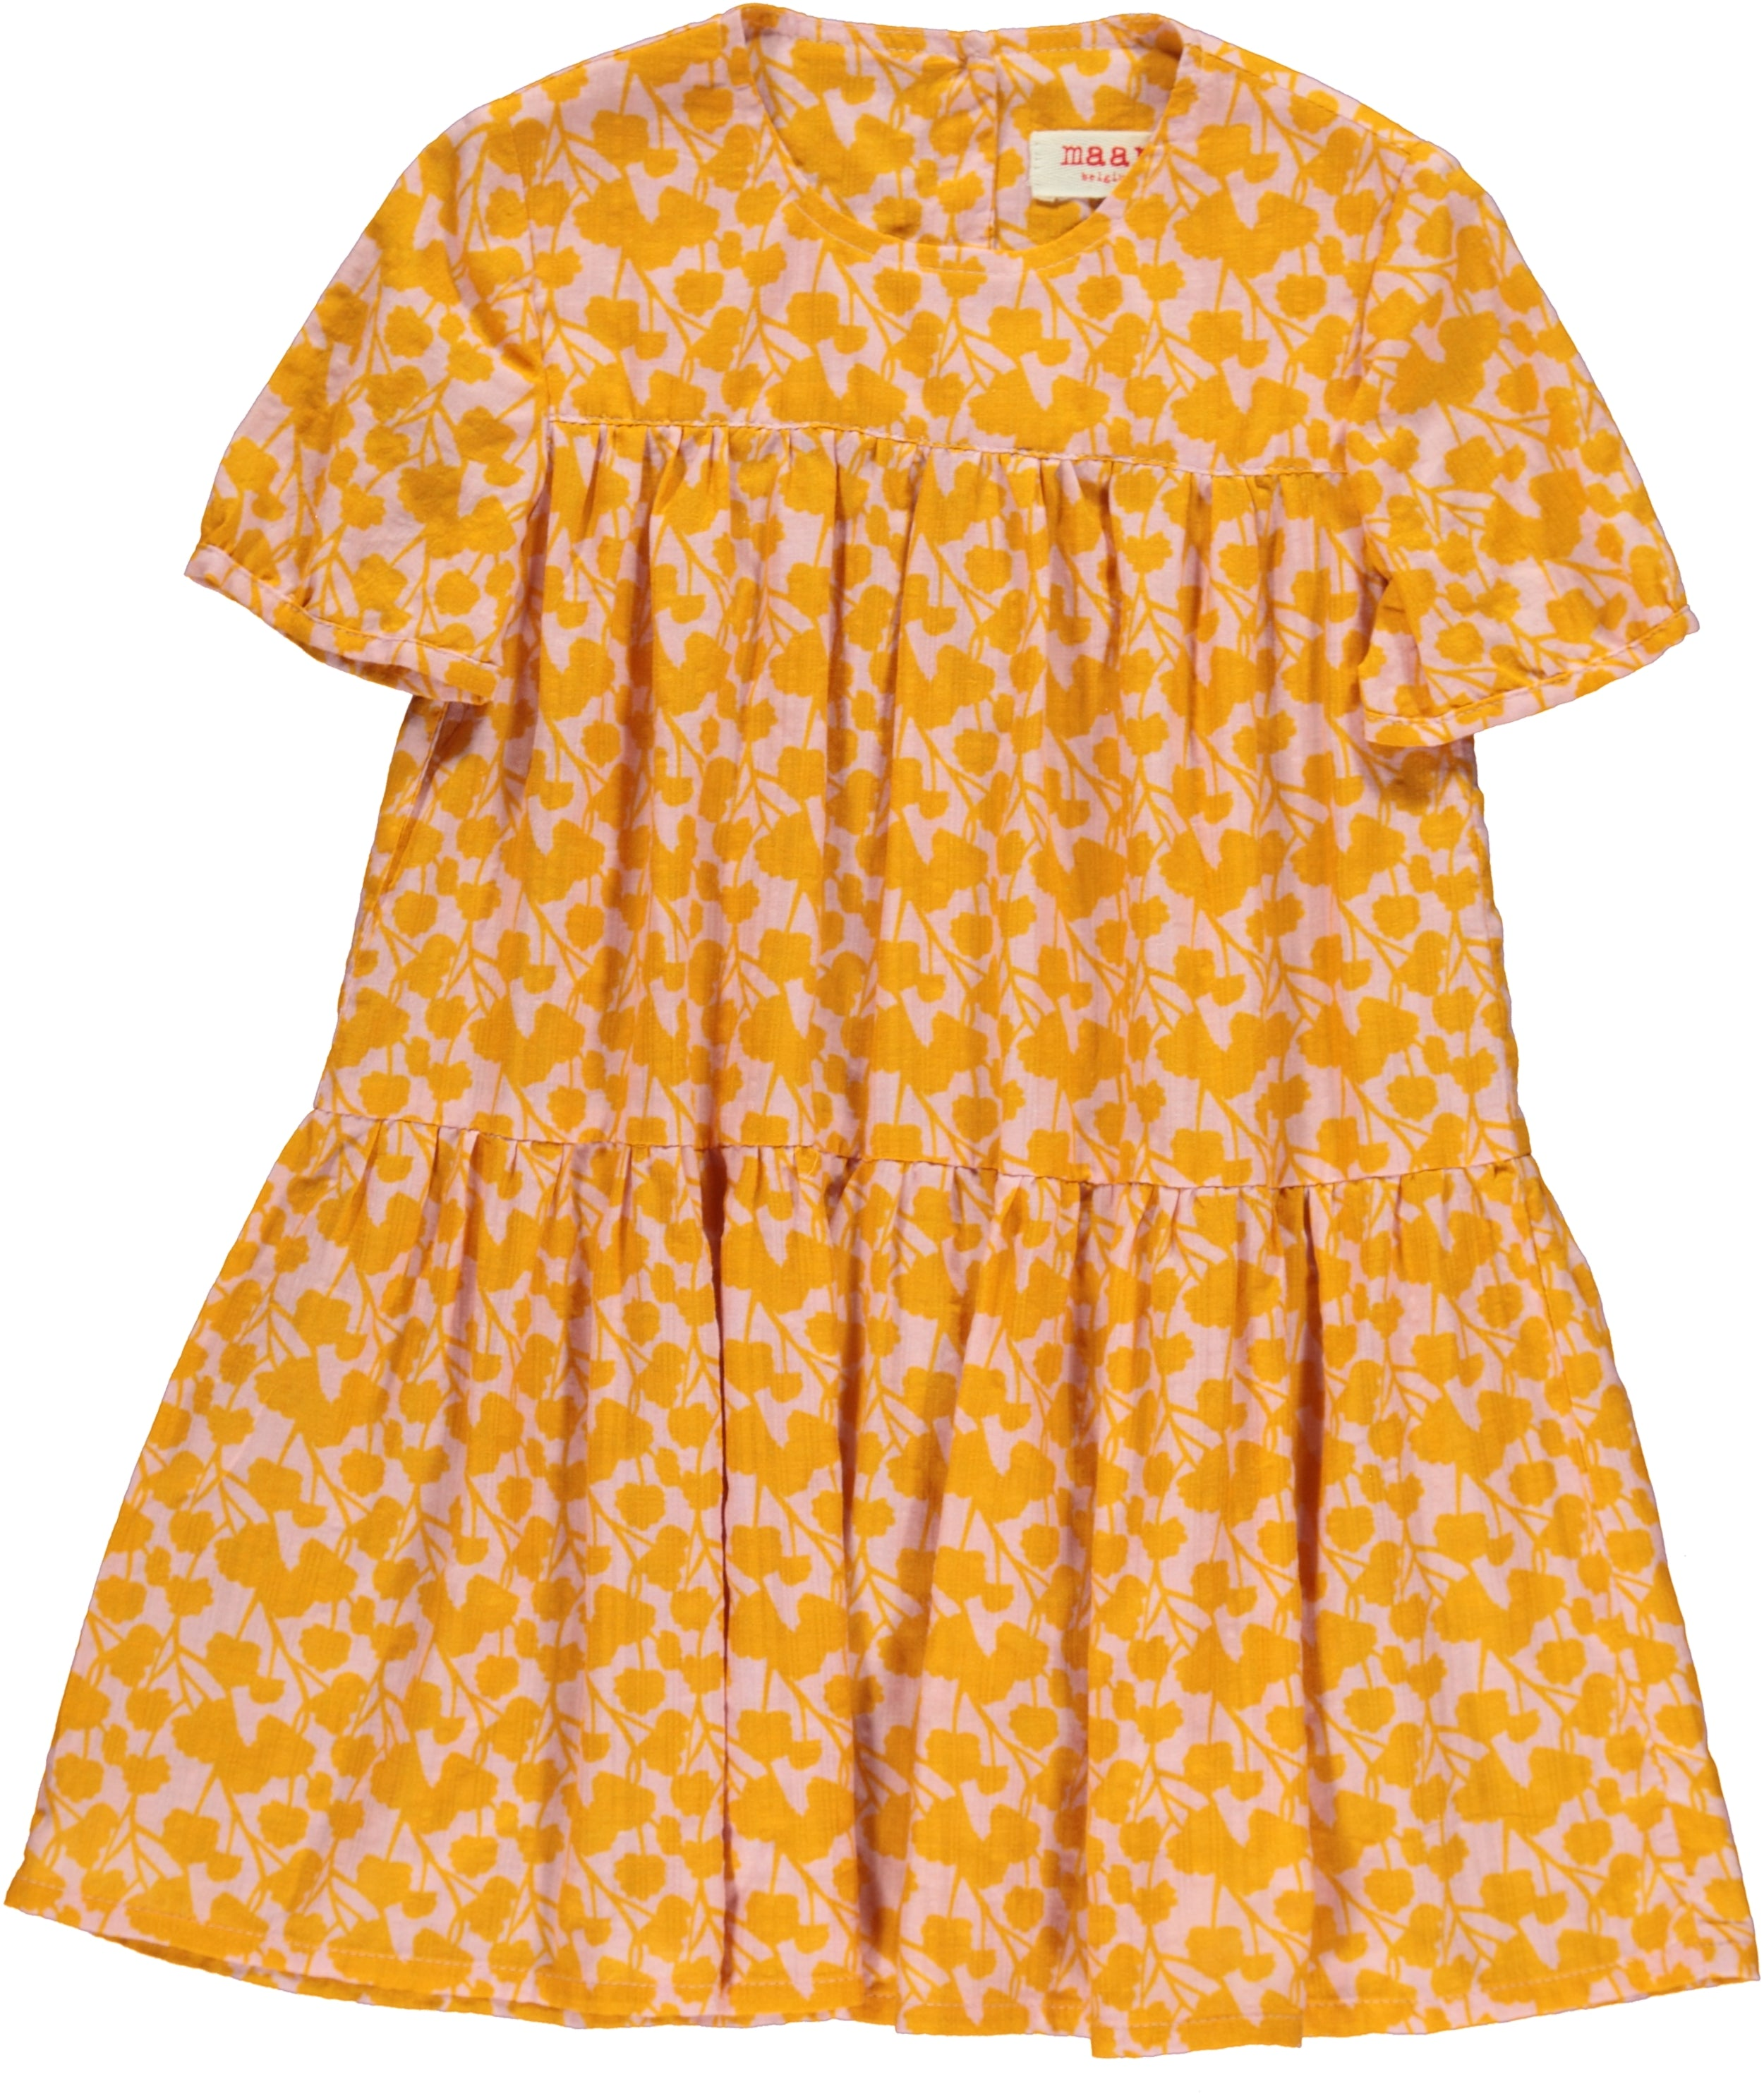 Rain Woven Dress Yellow